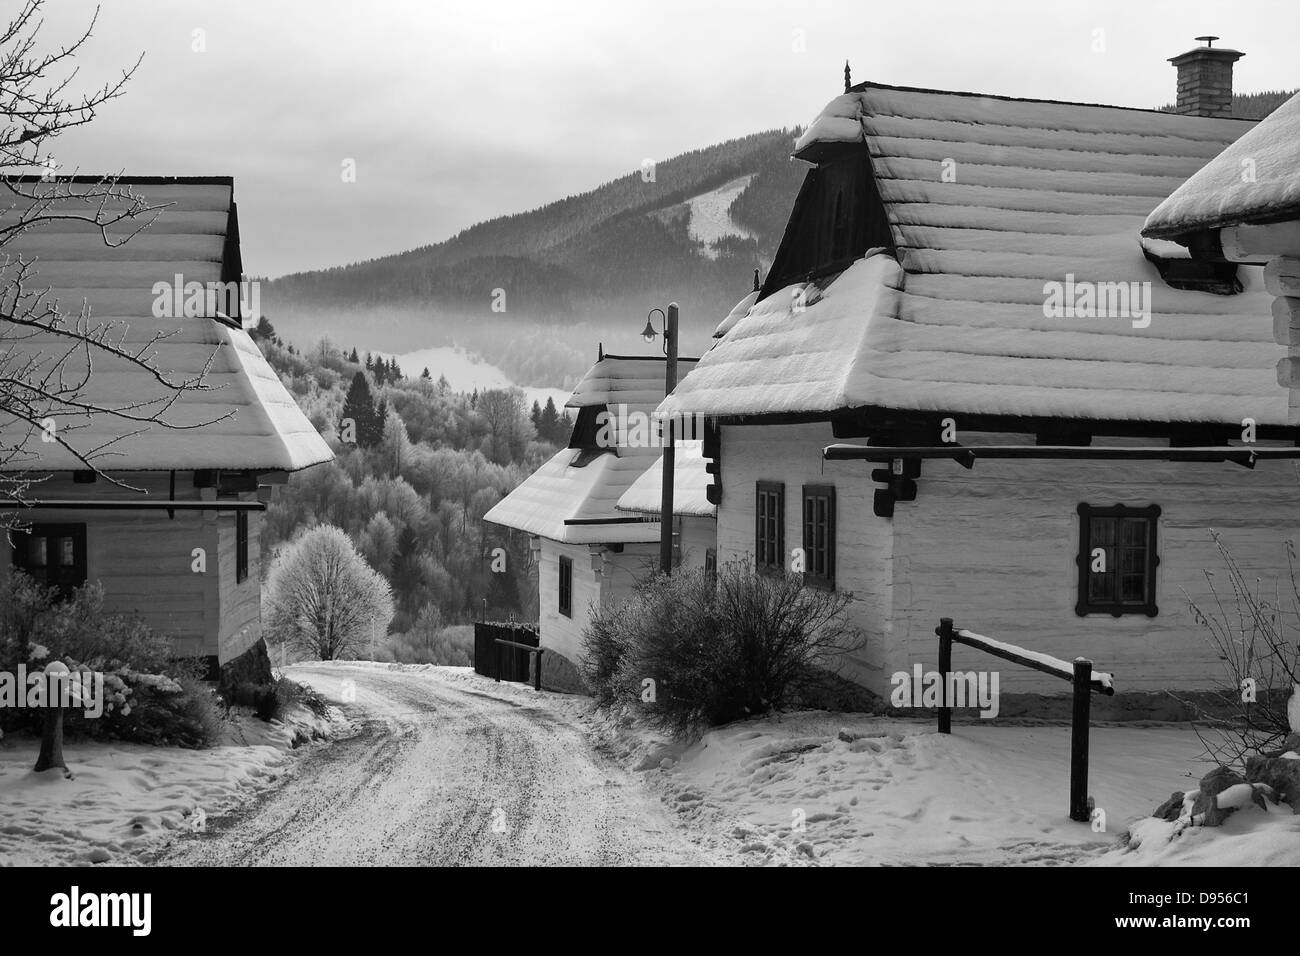 Cottages in open-air museum - Stock Image